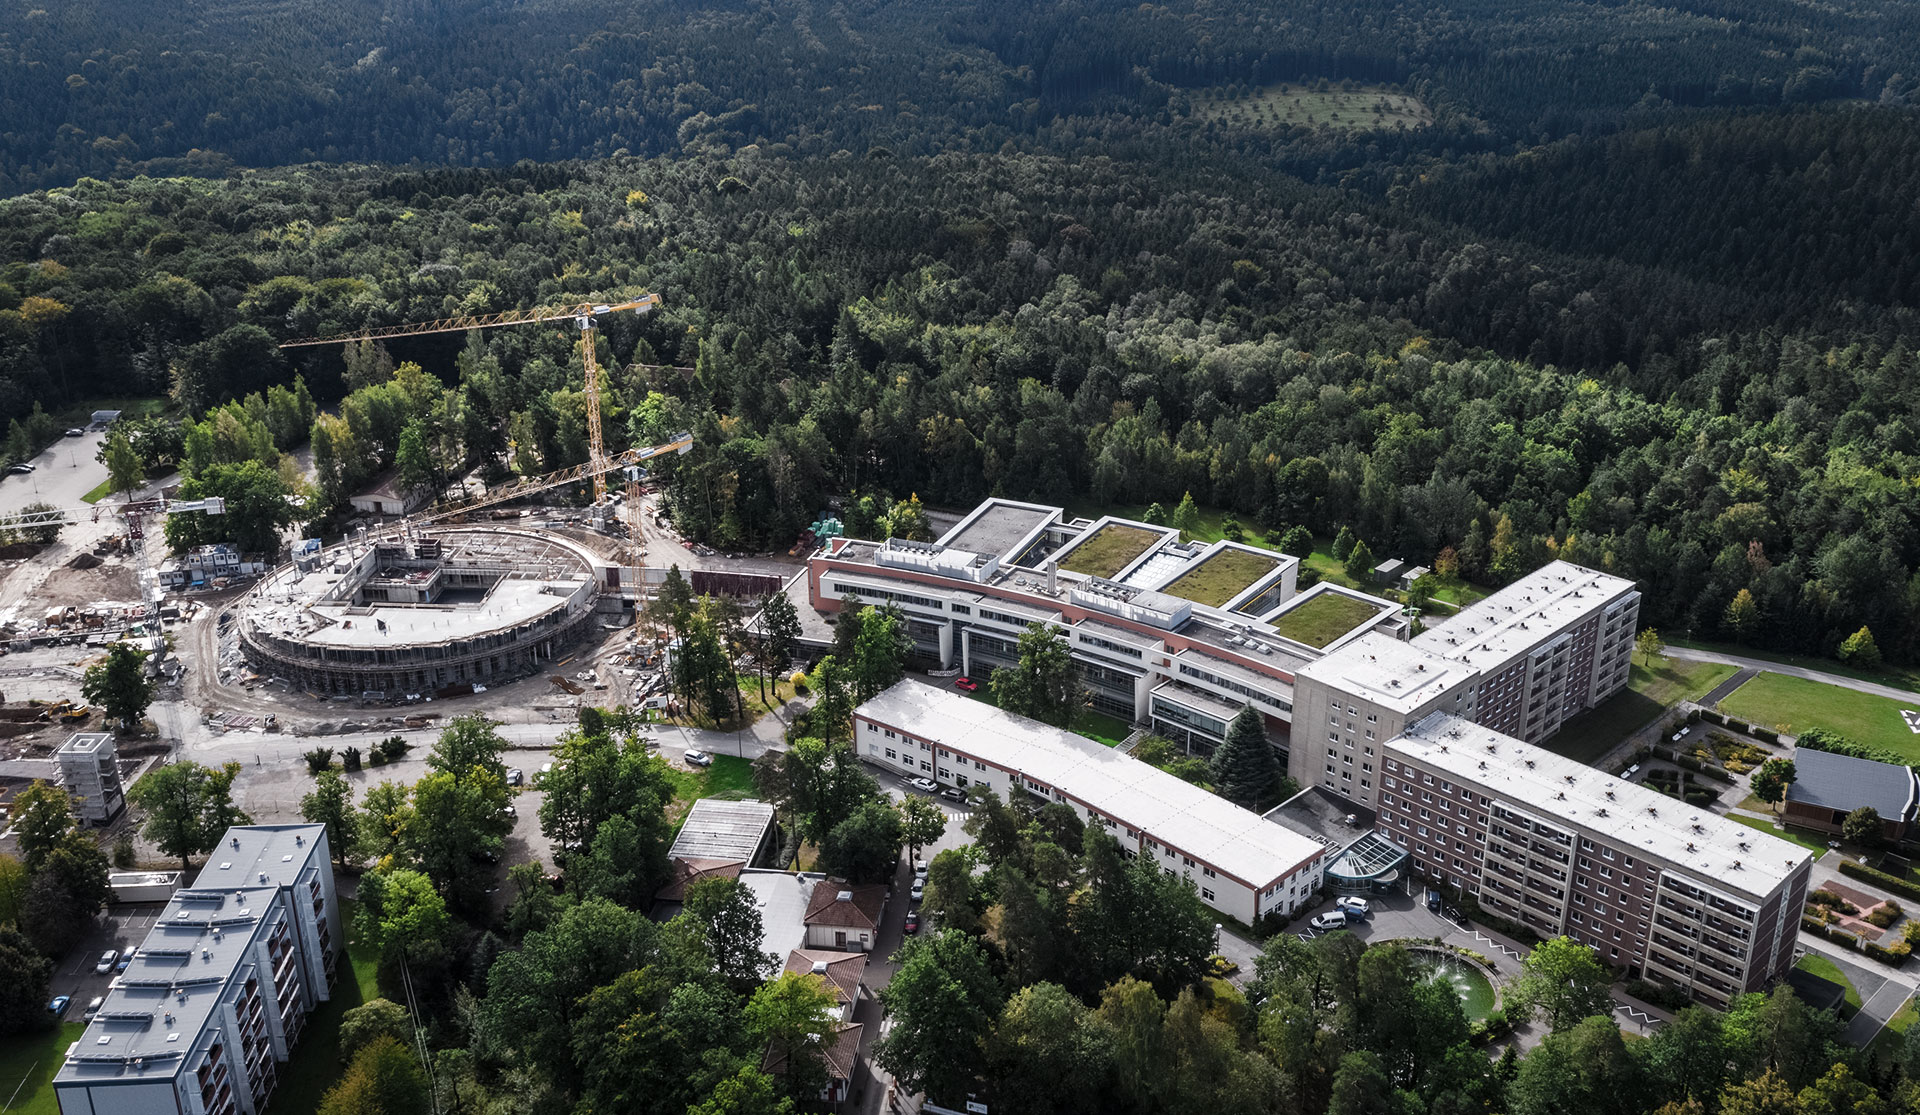 Hospital - Eisenberg (DE), June 2018 - Opening 2019